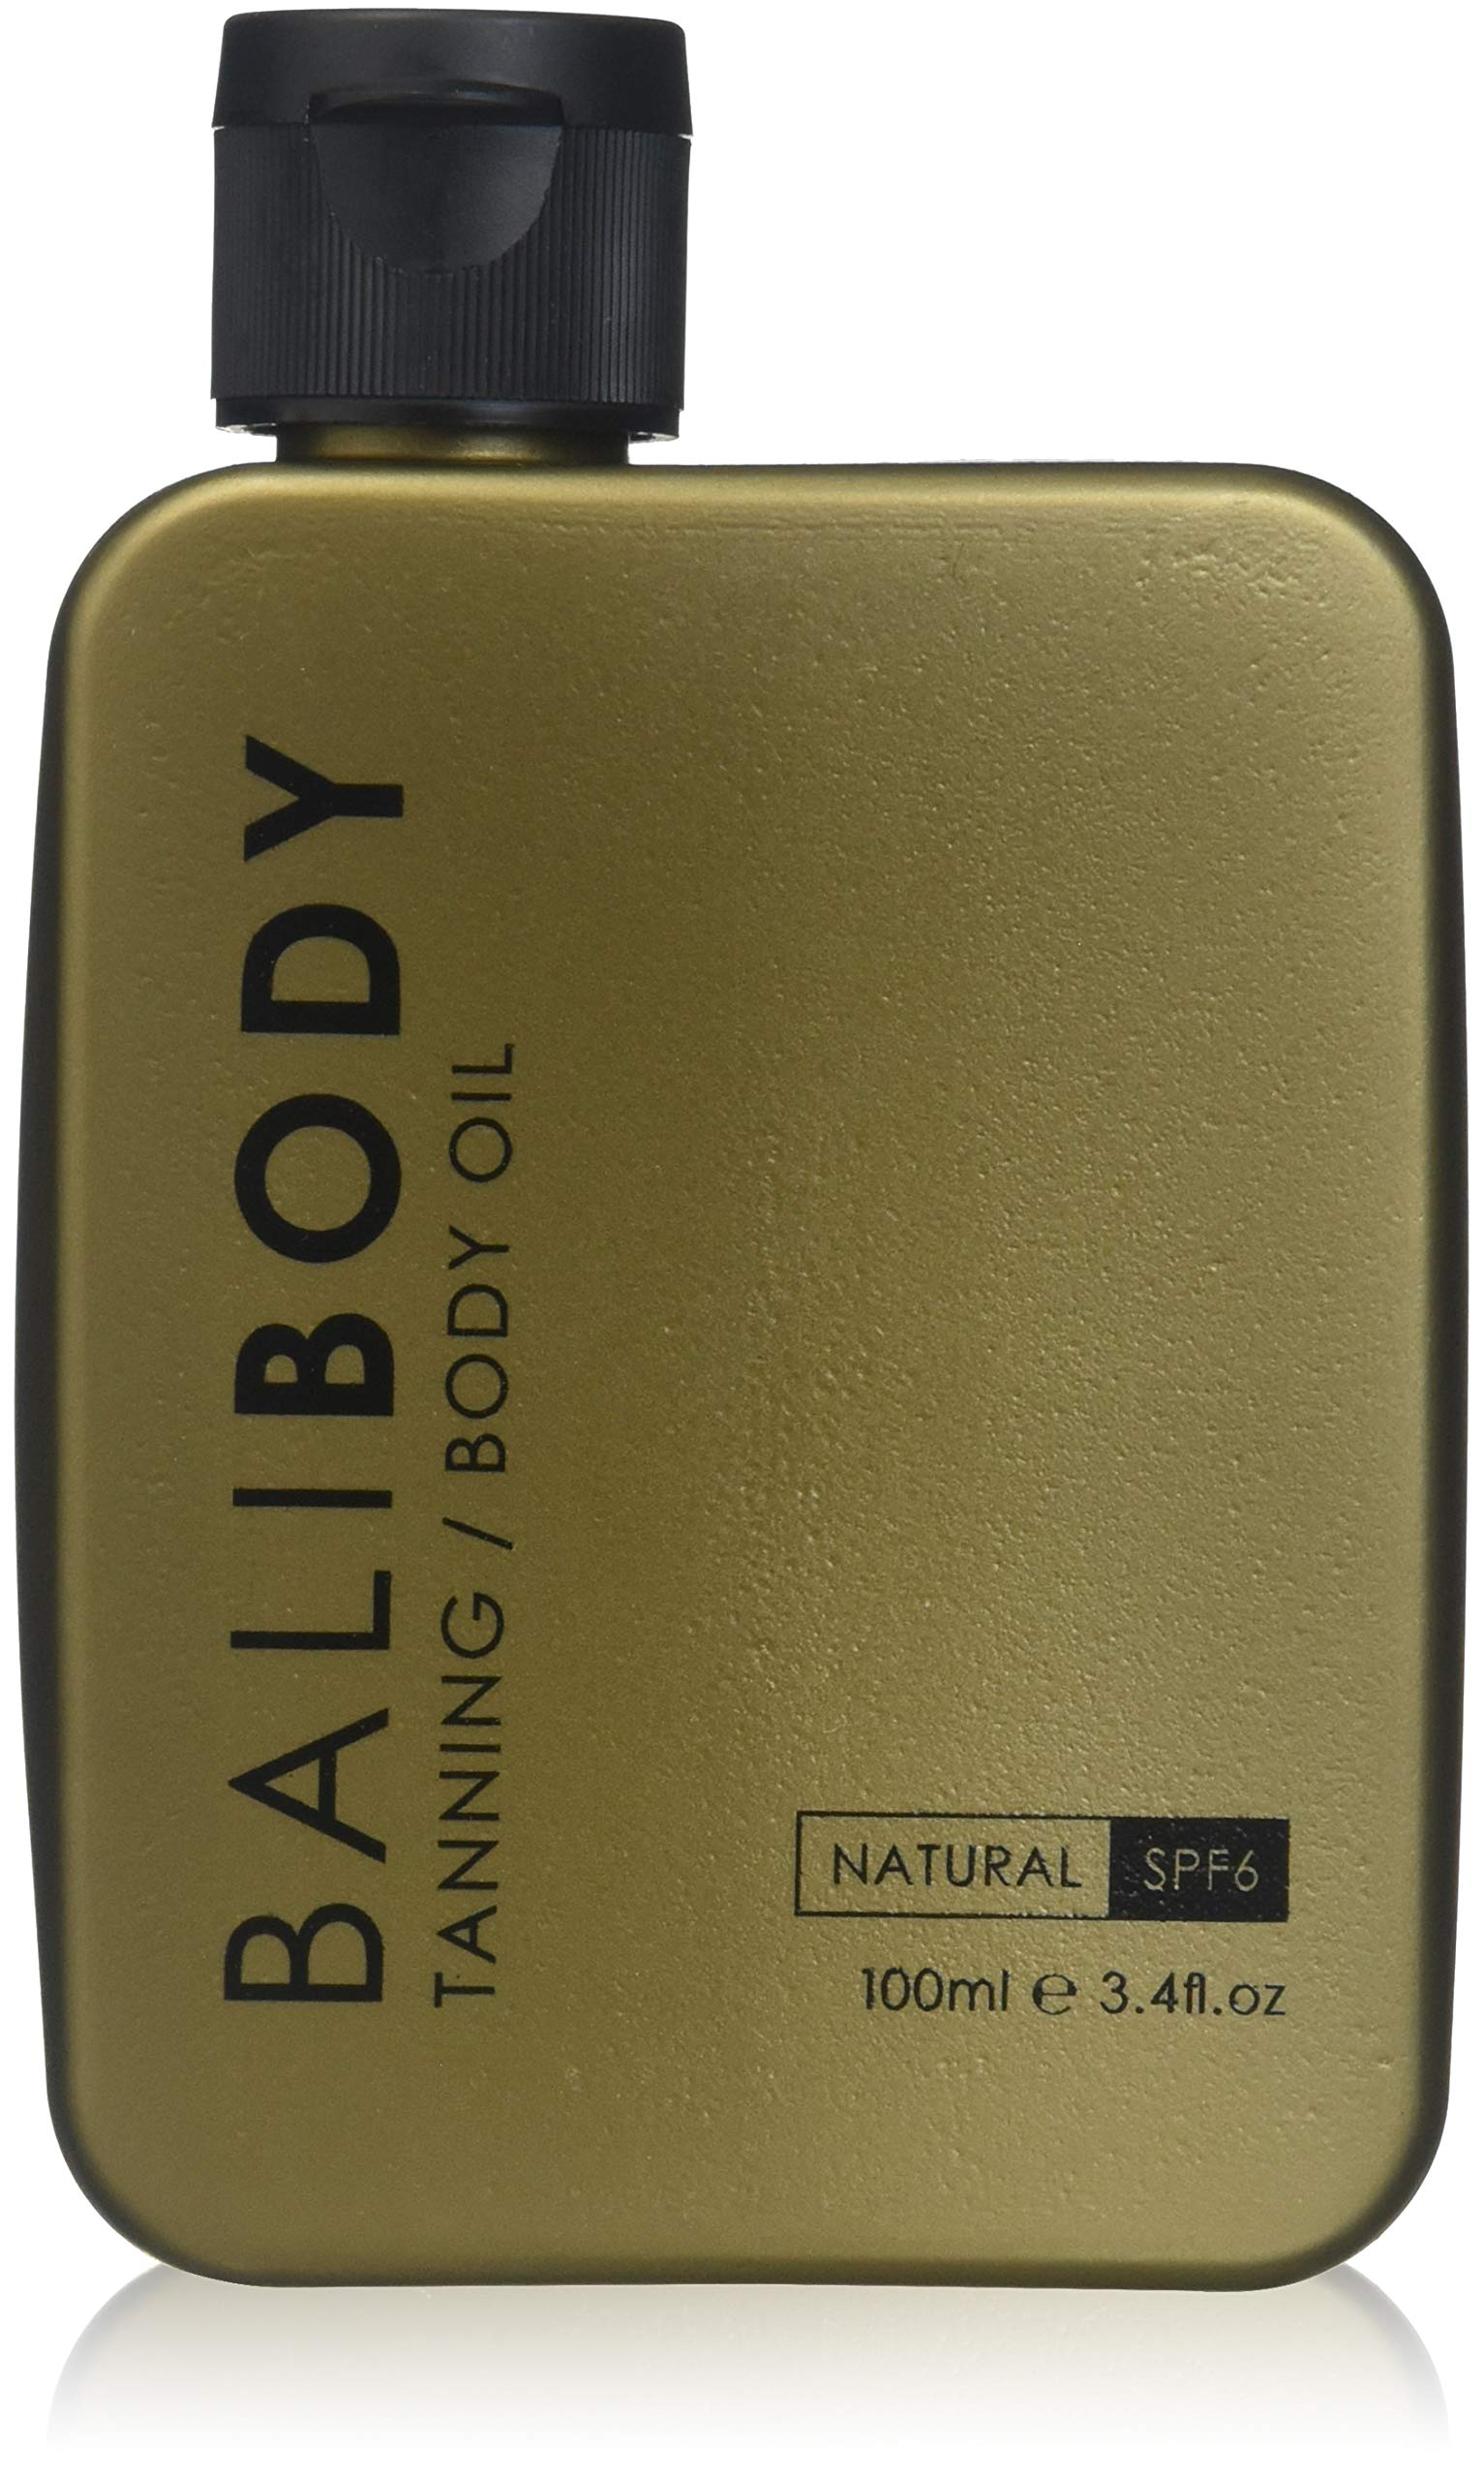 BALI BODY ORIGINAL NATURAL TANNING AND BODY OIL 110 ml by Bali Designs